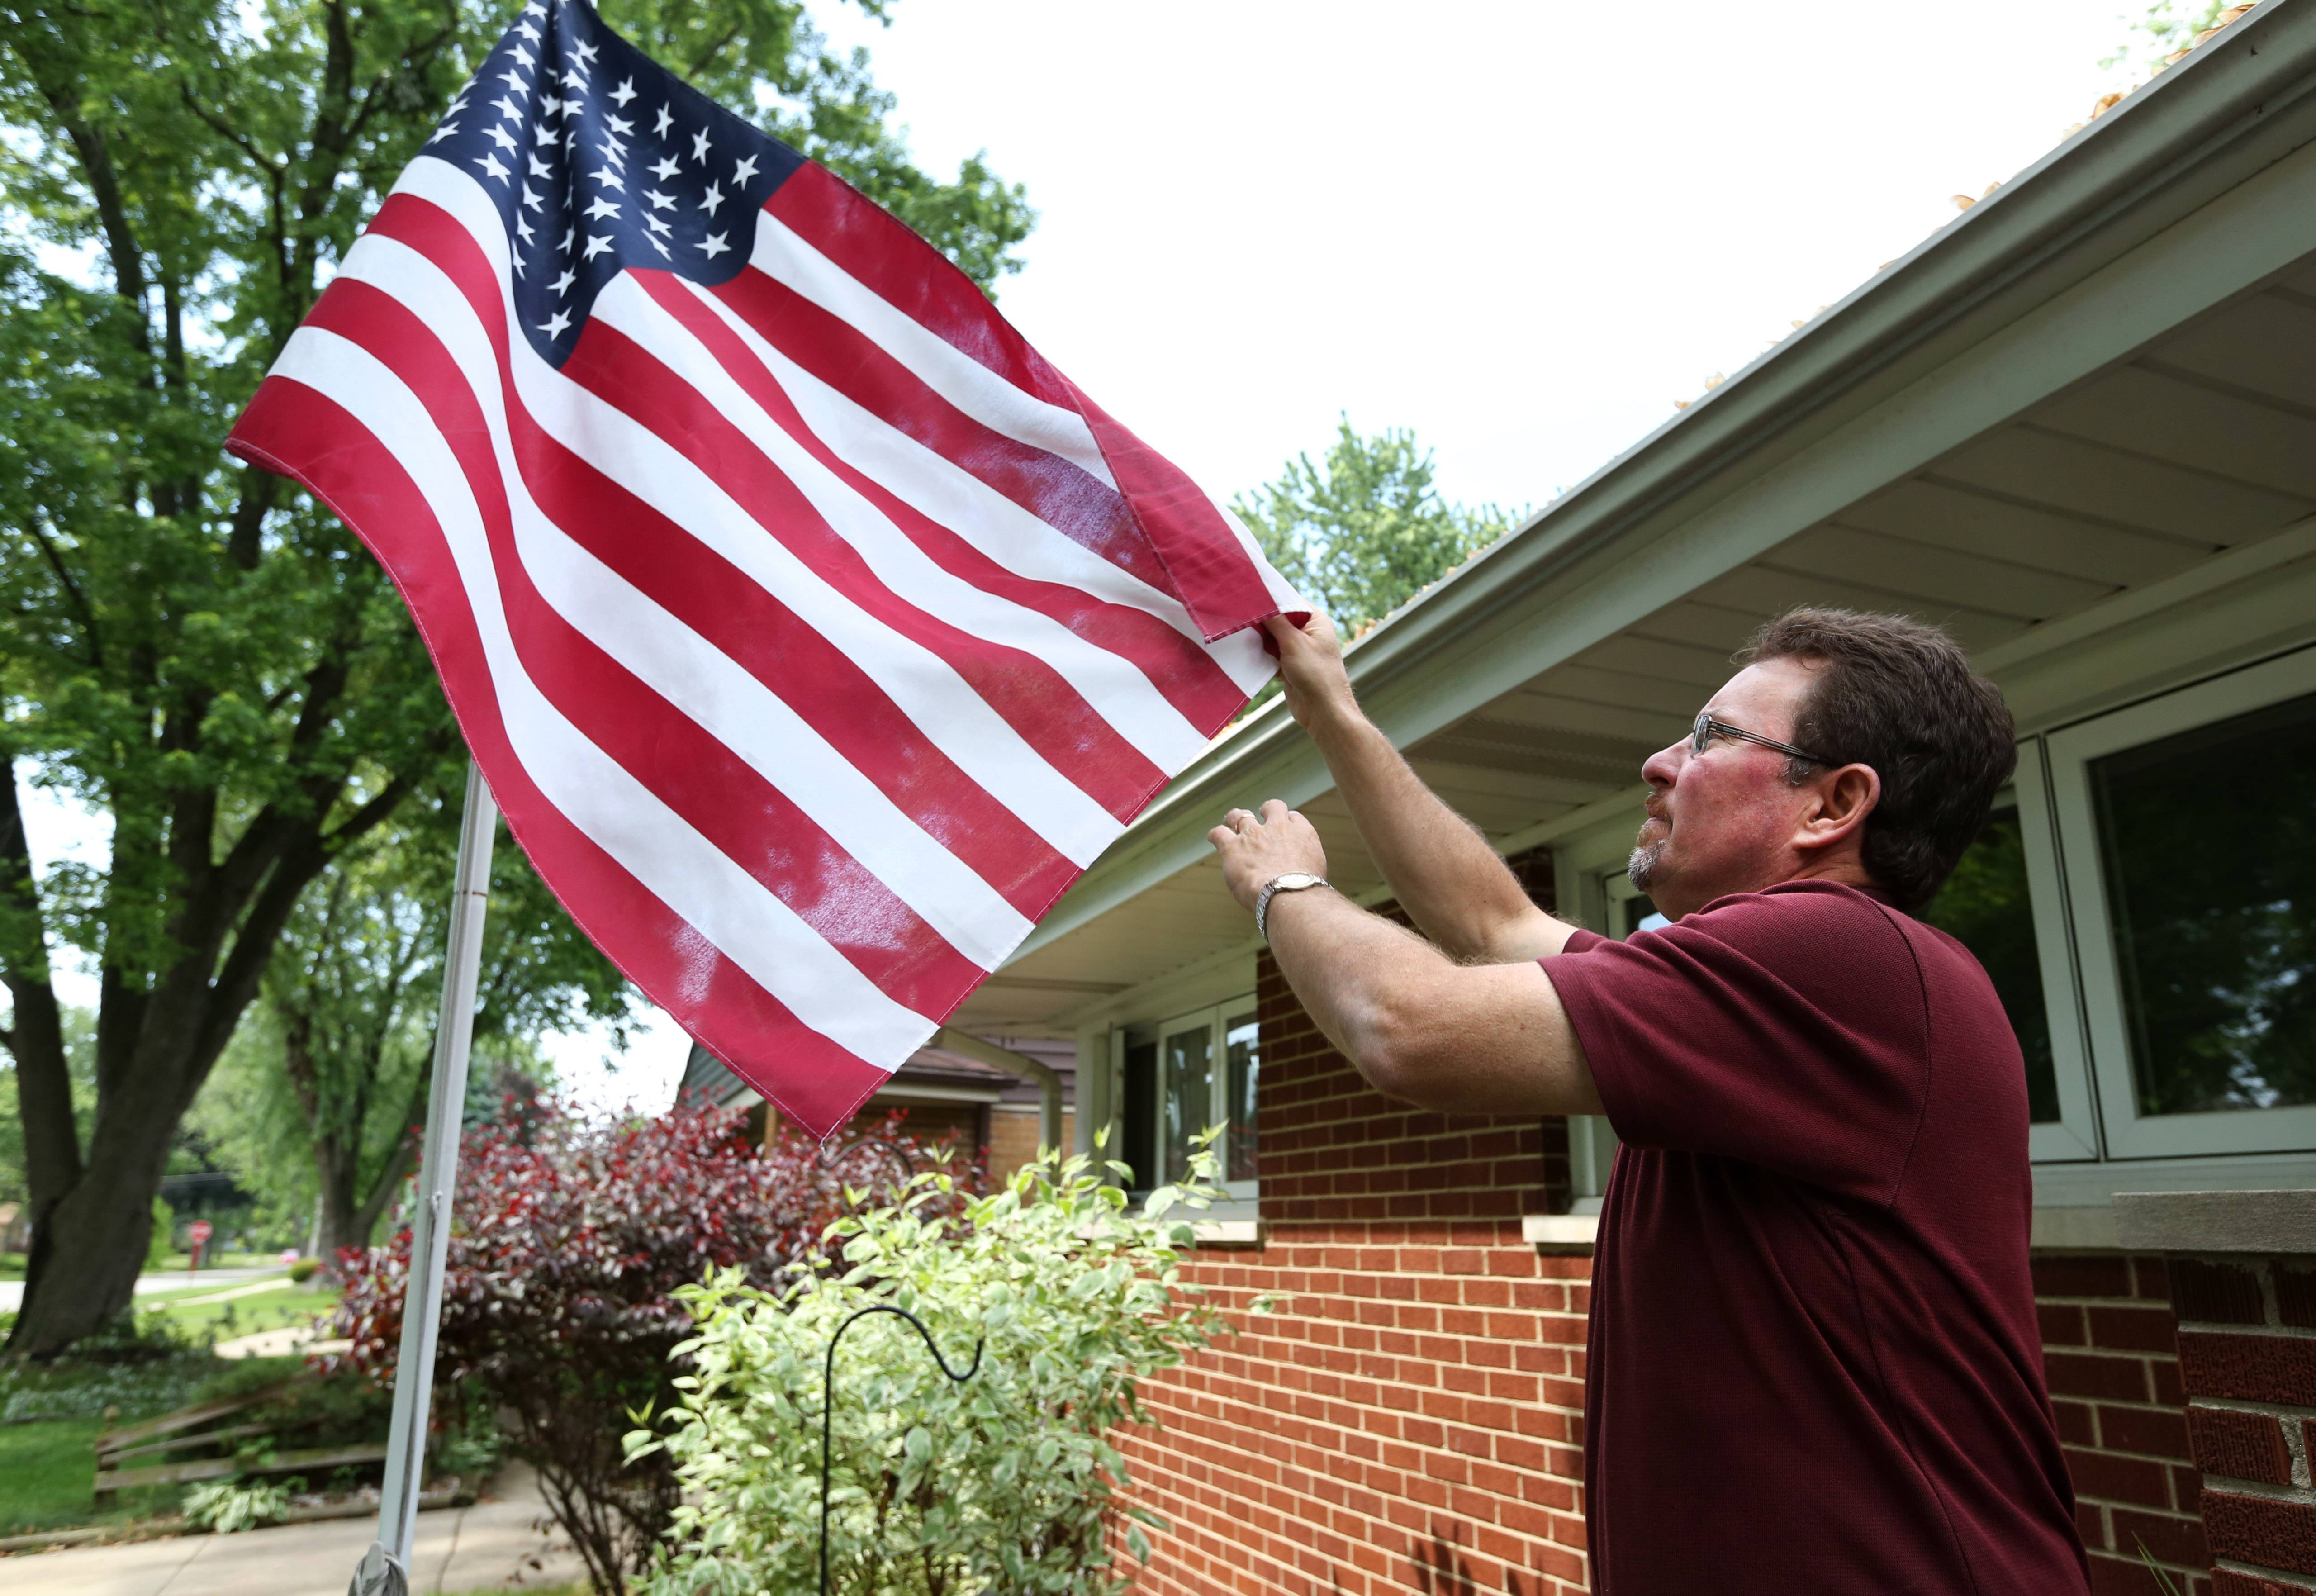 Mount Prospect U.S. Postmaster Mike Naranjo with his family's American flag in Mount Prospect. Naranjo has worked for the U.S. Postal Service for 35 years.